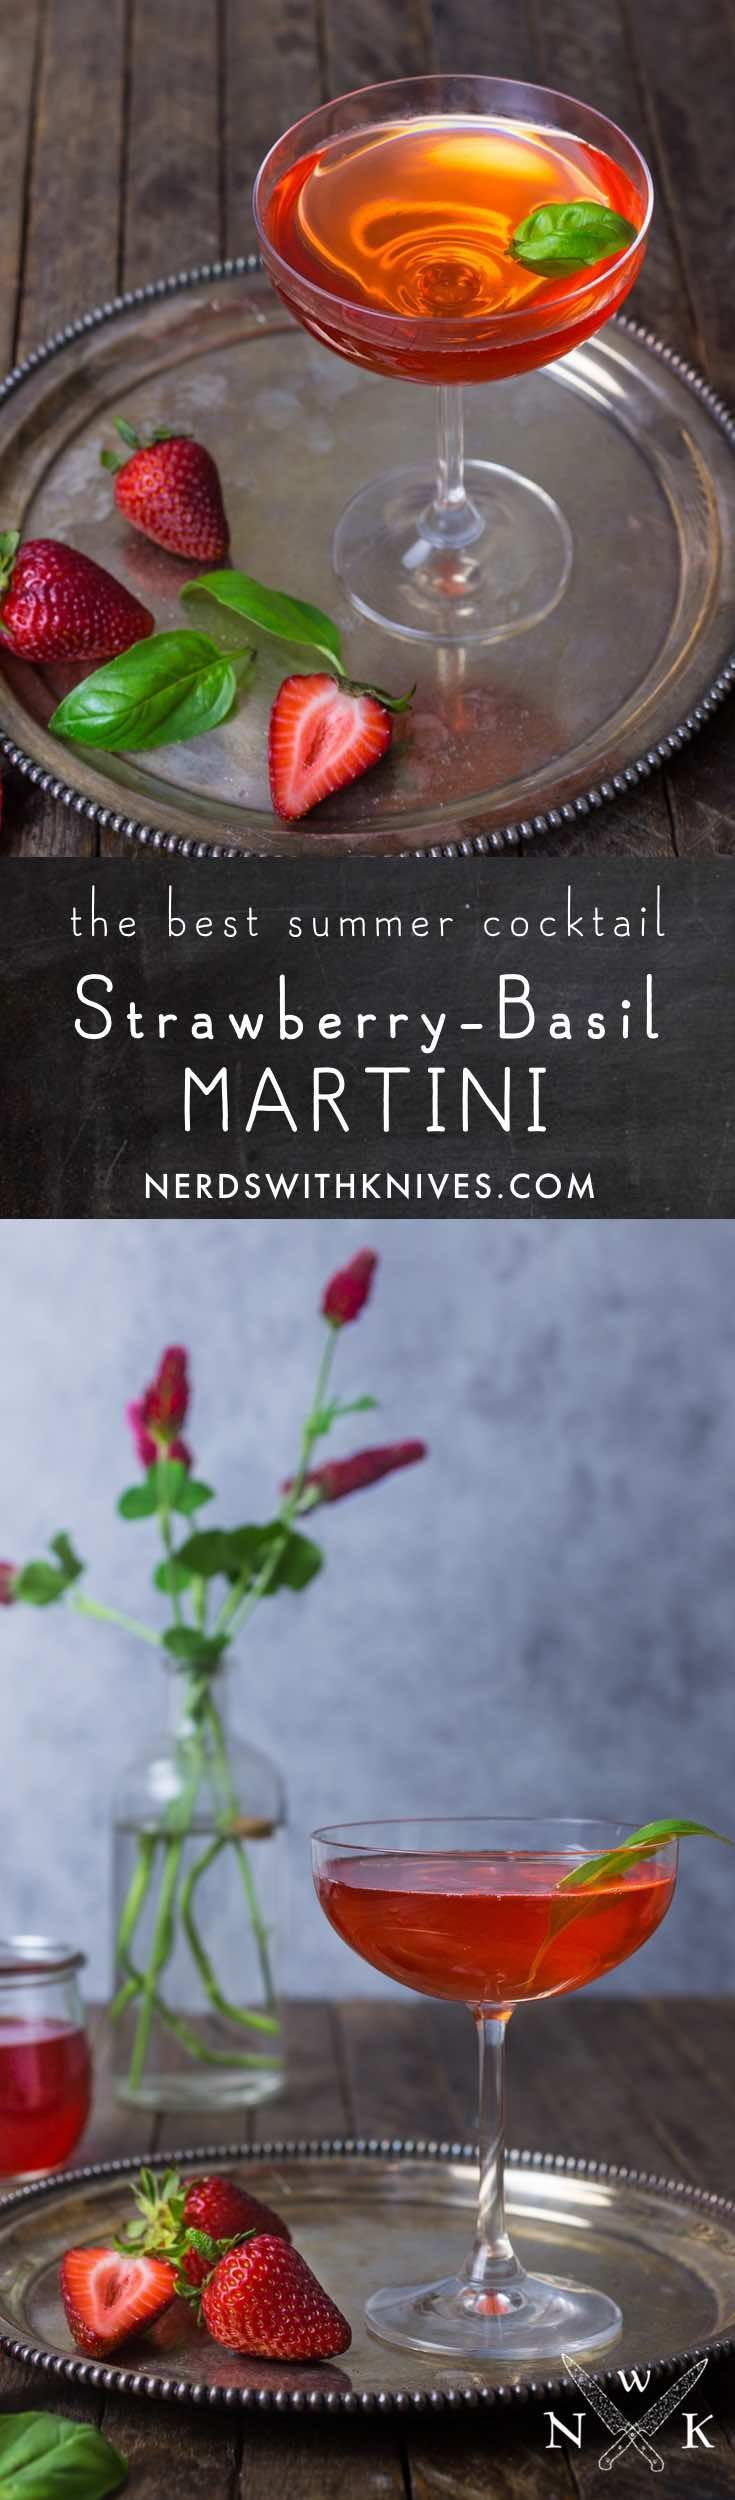 Our summer drink obsession; the Strawberry-Basil Martini is a sophisticated cocktail that pairs two of our favorite seasonal flavors.